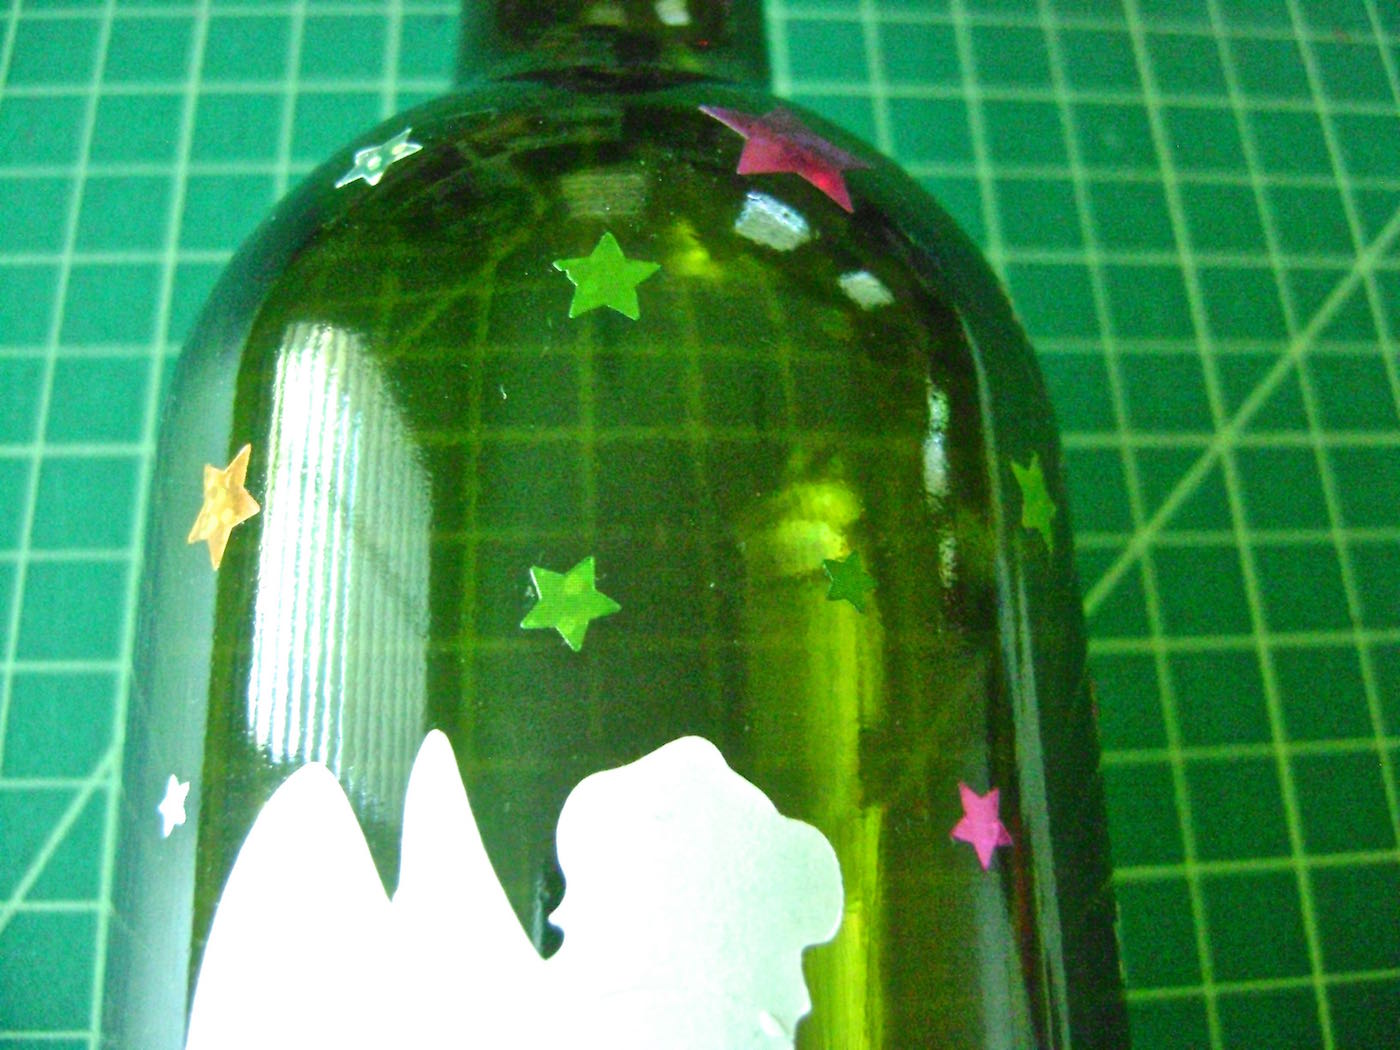 step 4 - Arrange star stickers in a variety of sizes on the bottle.